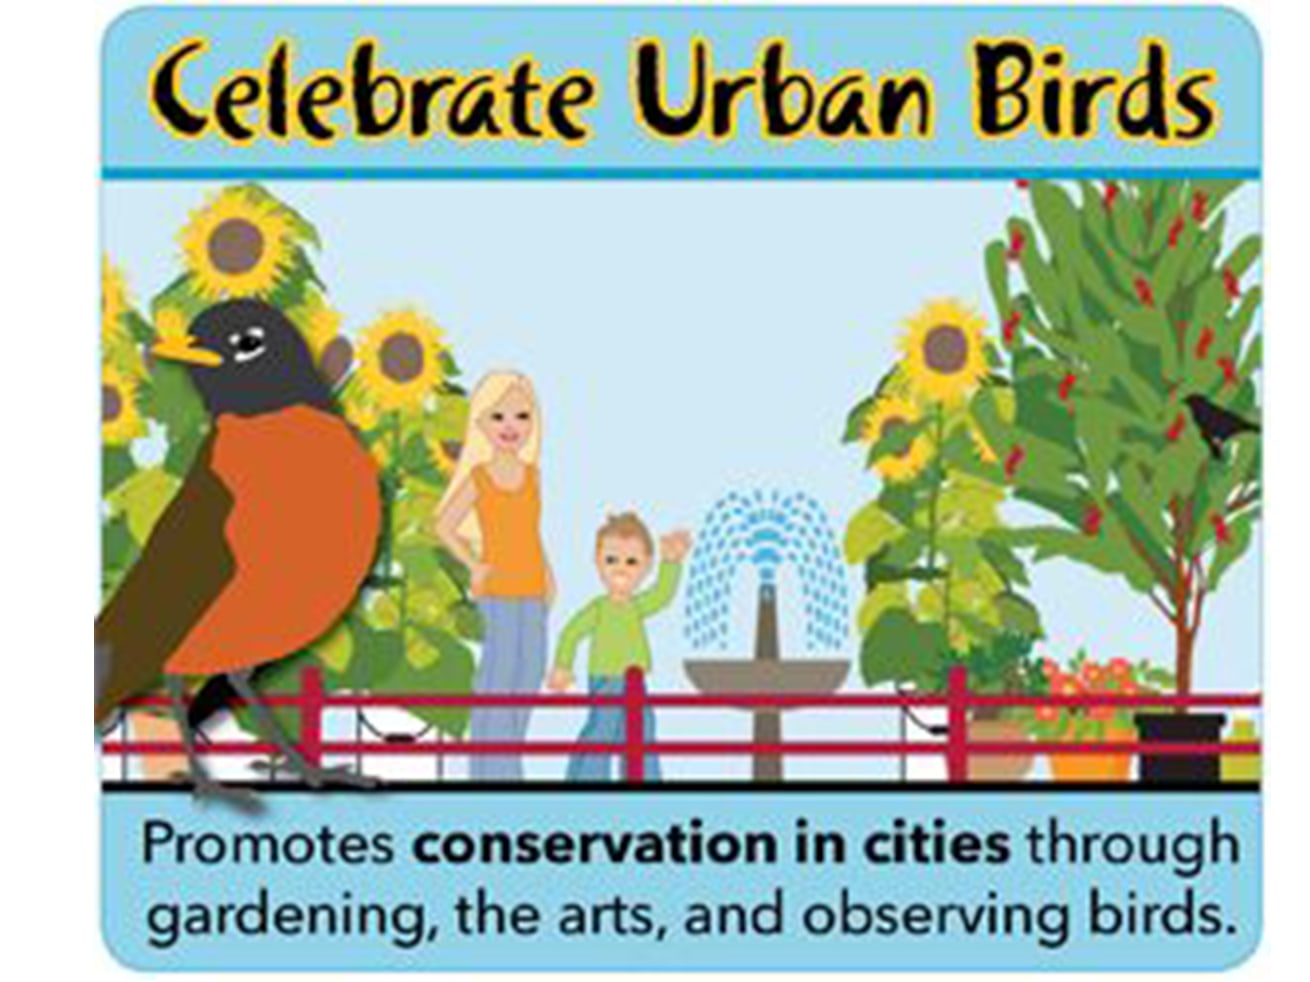 The Cornell Lab of Ornithology's Celebrate Urban Birds initiative includes music and arts, neighbourhood greening, and other community habitat-creation efforts. Photo: Pinterest